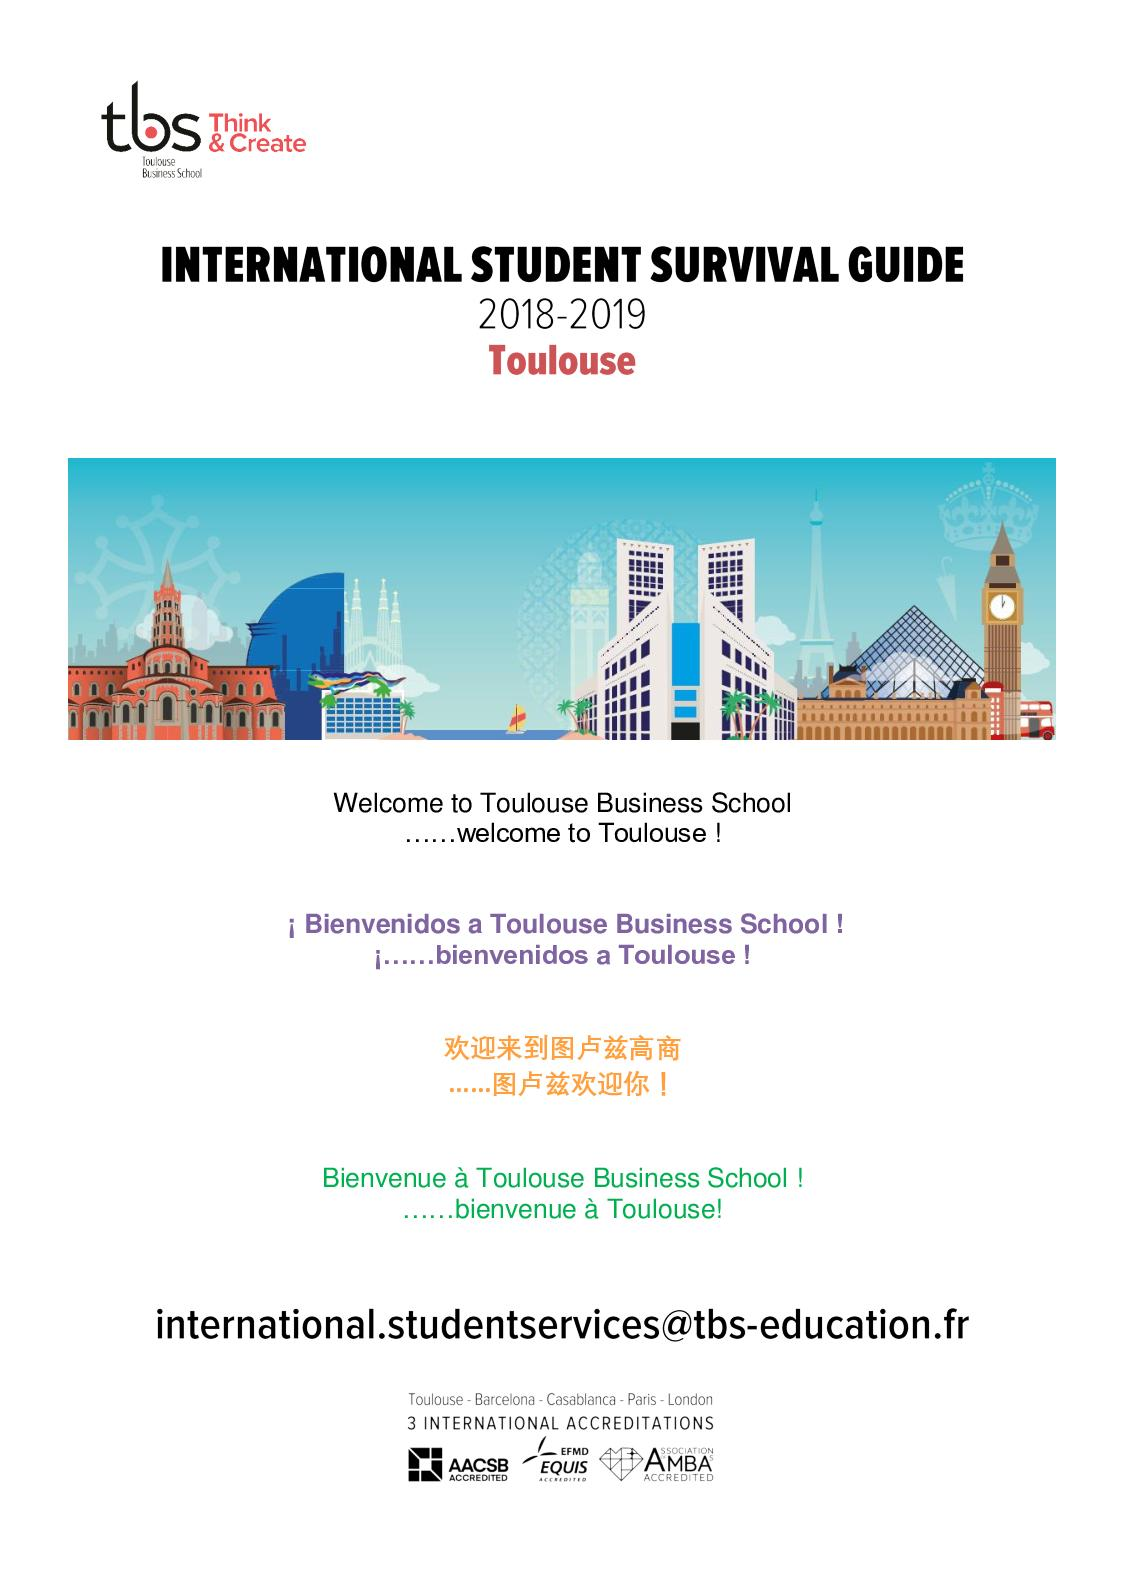 Bus Ikea Toulouse Calaméo Tbs Student Survival Guide Jan2019 Campus Toulouse